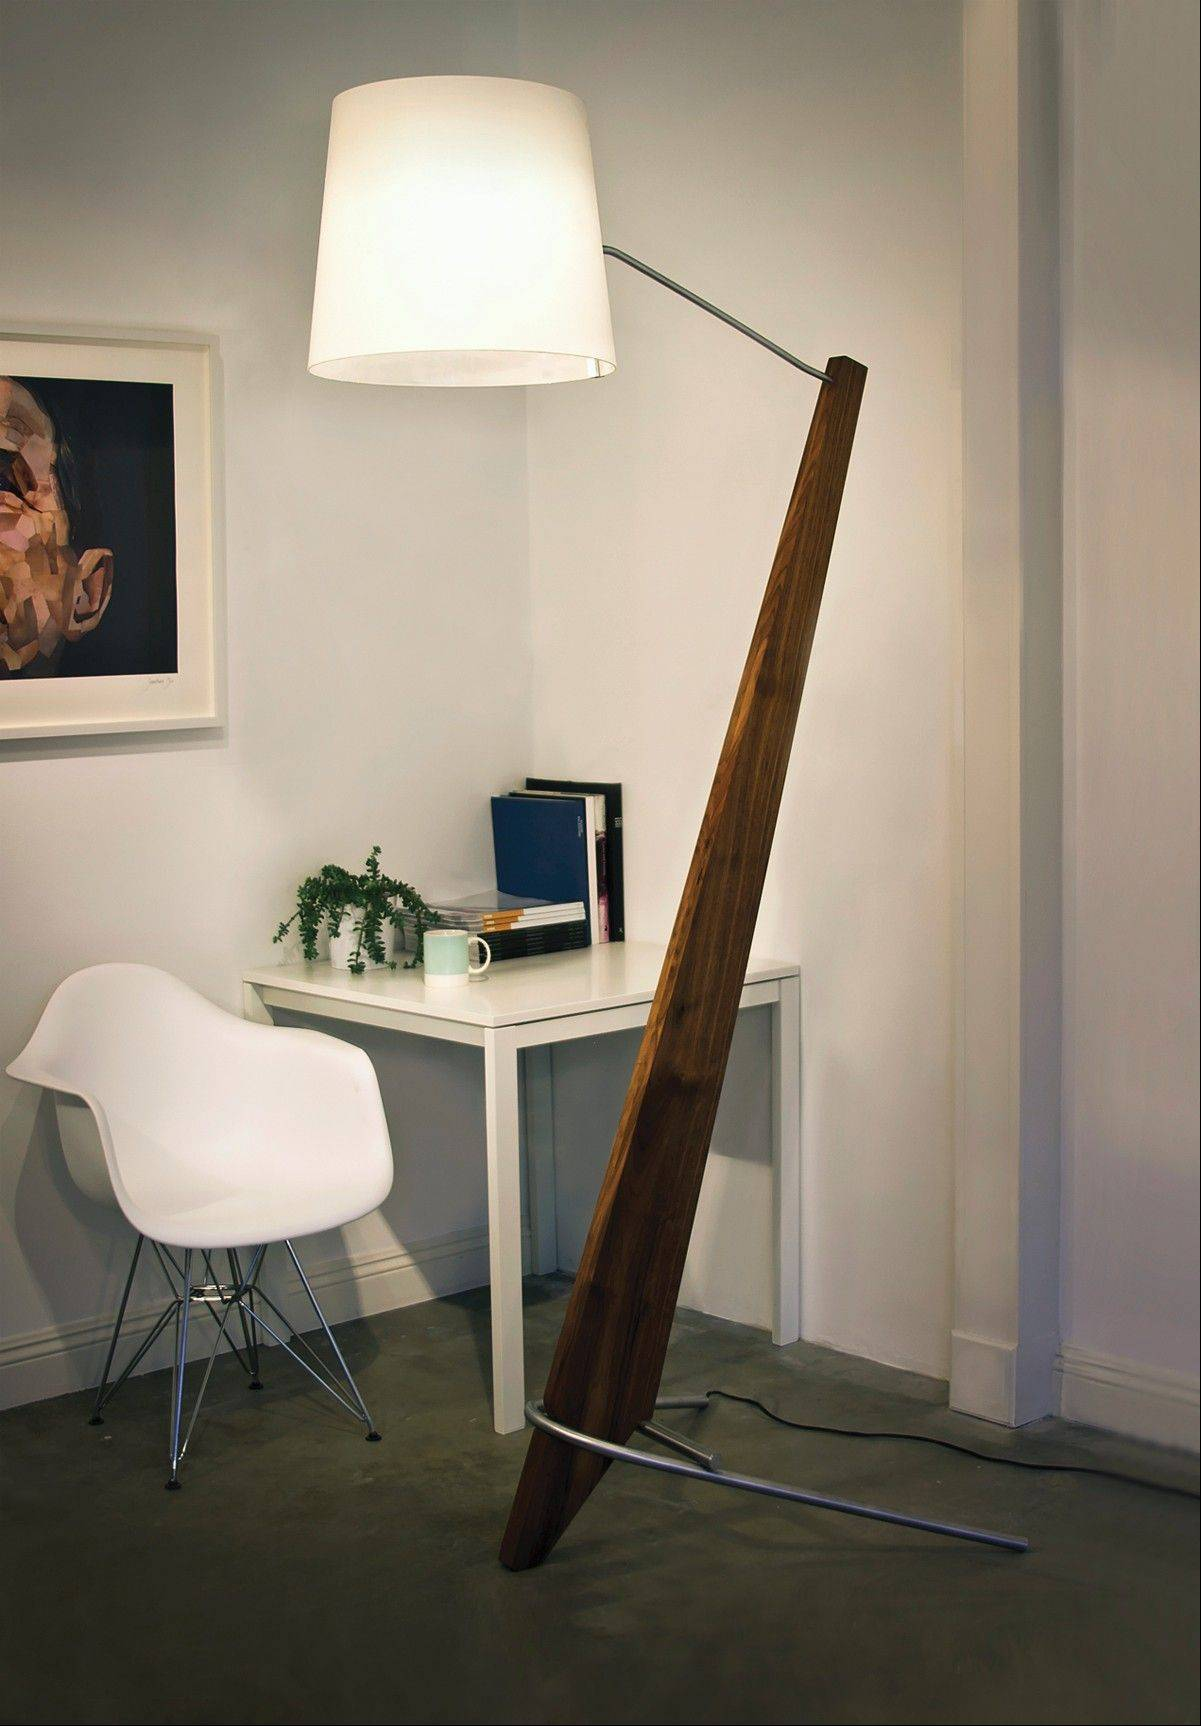 An 84-inch-tall Silva Giant lamp crafted from aluminum and walnut produces a dramatic, yet sleek fixture that epitomizes contemporary design.